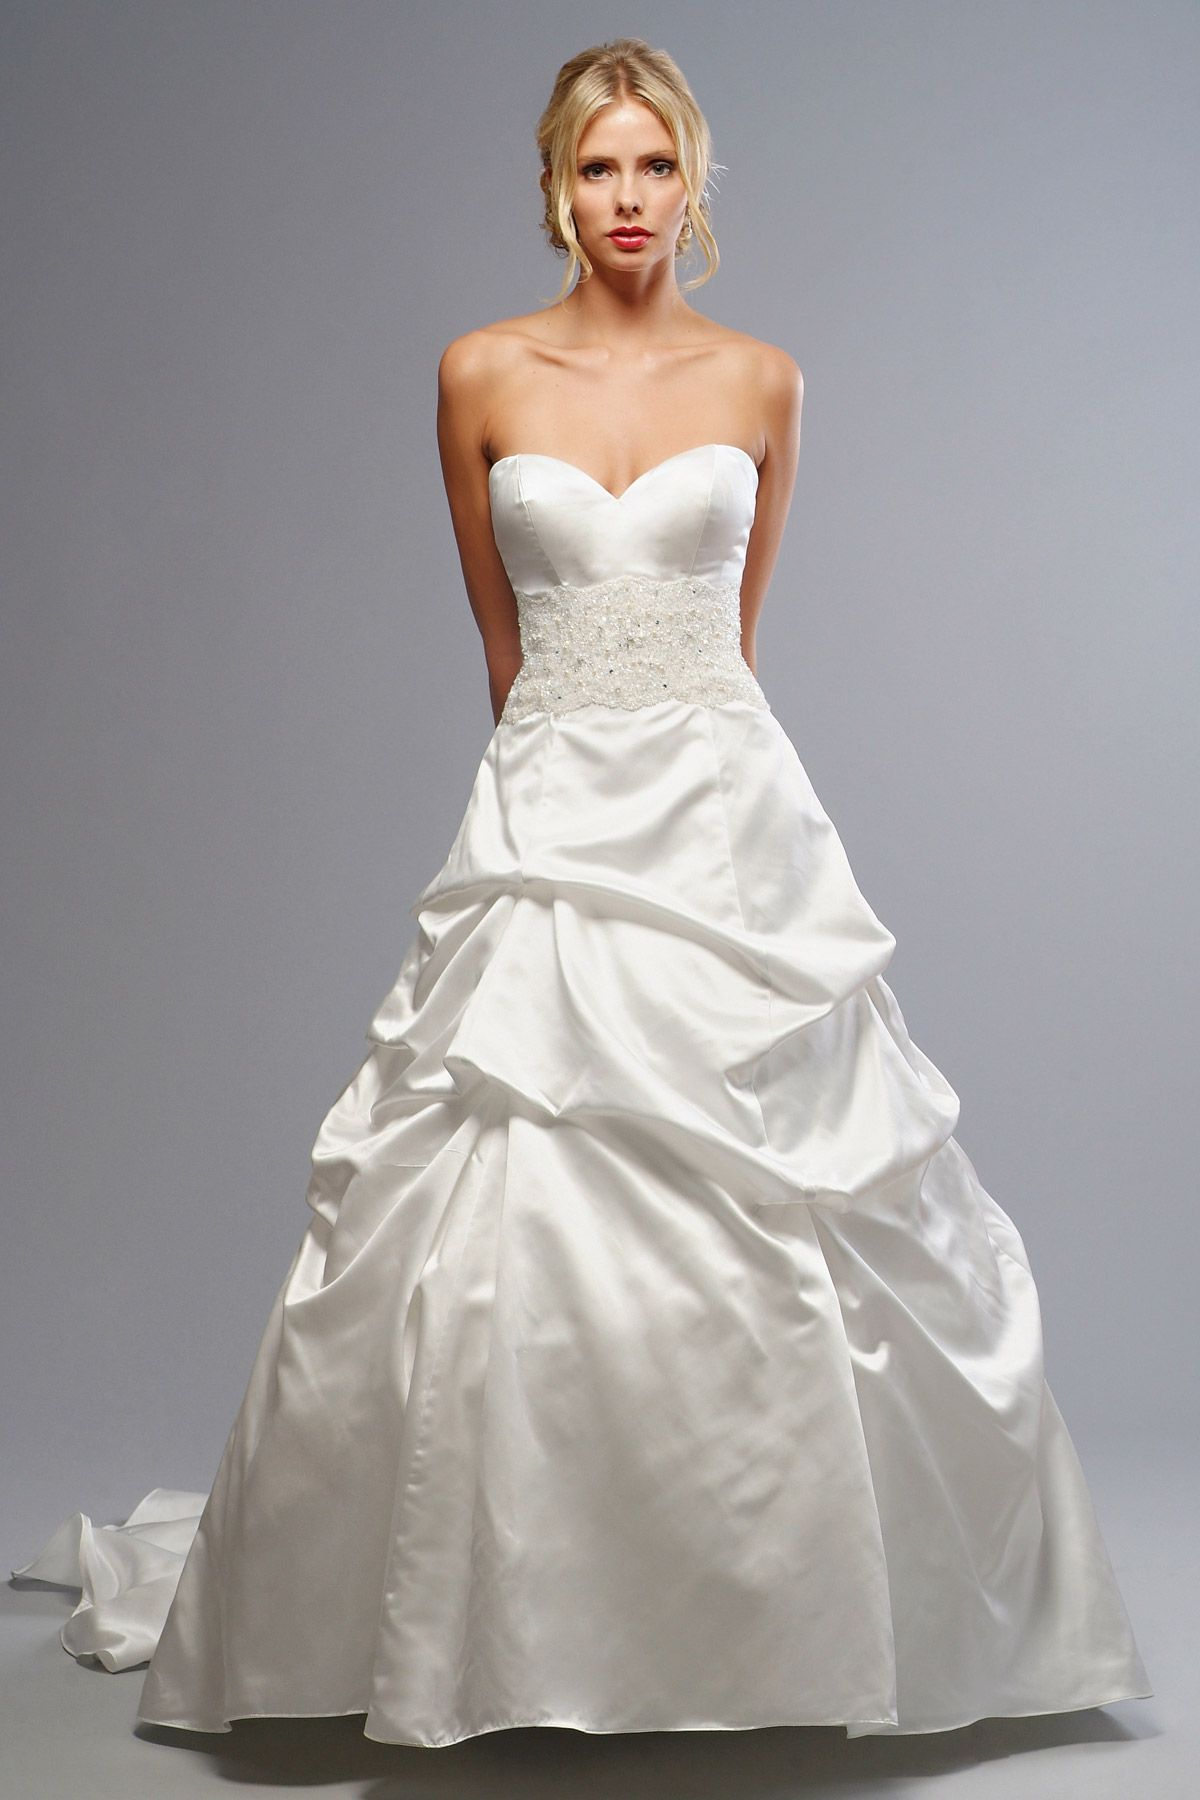 Wedding dress images wedding dresses bridal gowns style